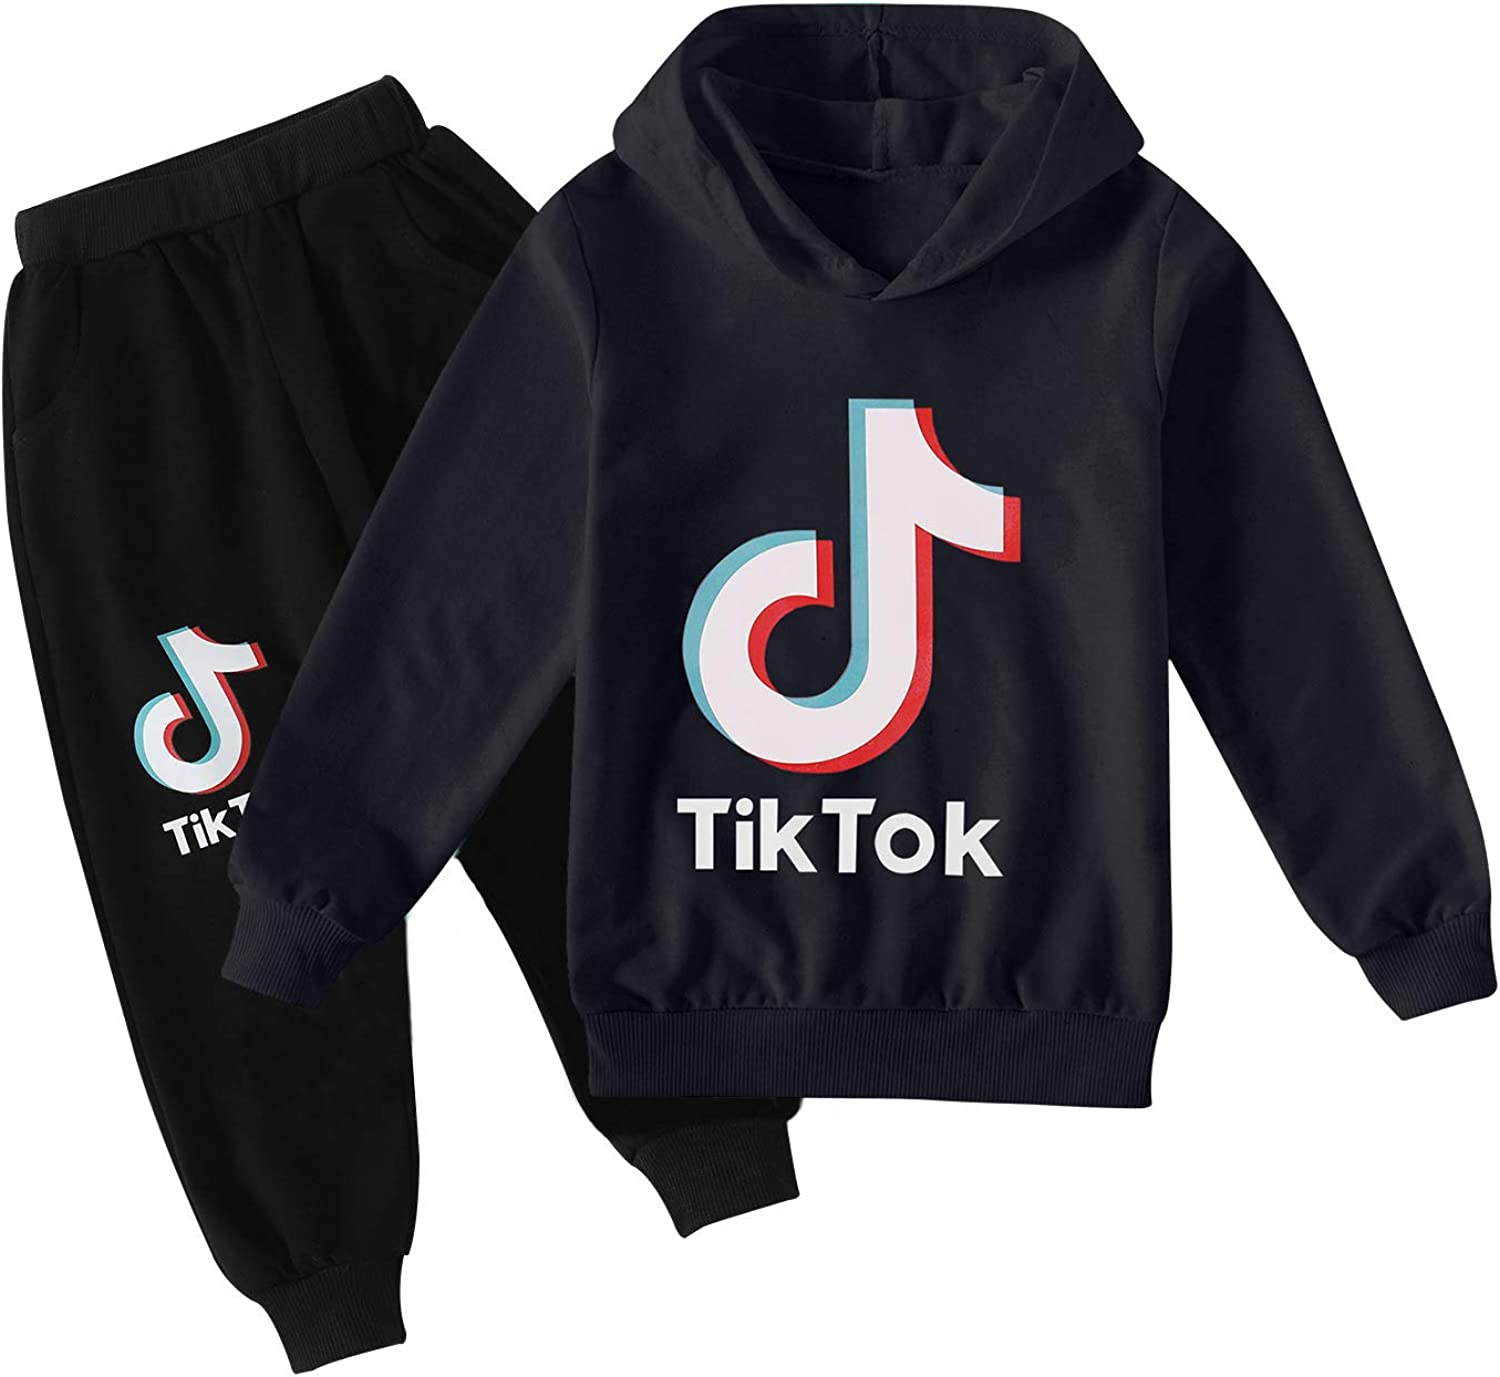 GTGY Kids TIK-Tok Sweatshirts with Hood Novelty Fashion Hoodies and Sweatpants Set for Boys Girls Pullover Casual Clothes Set